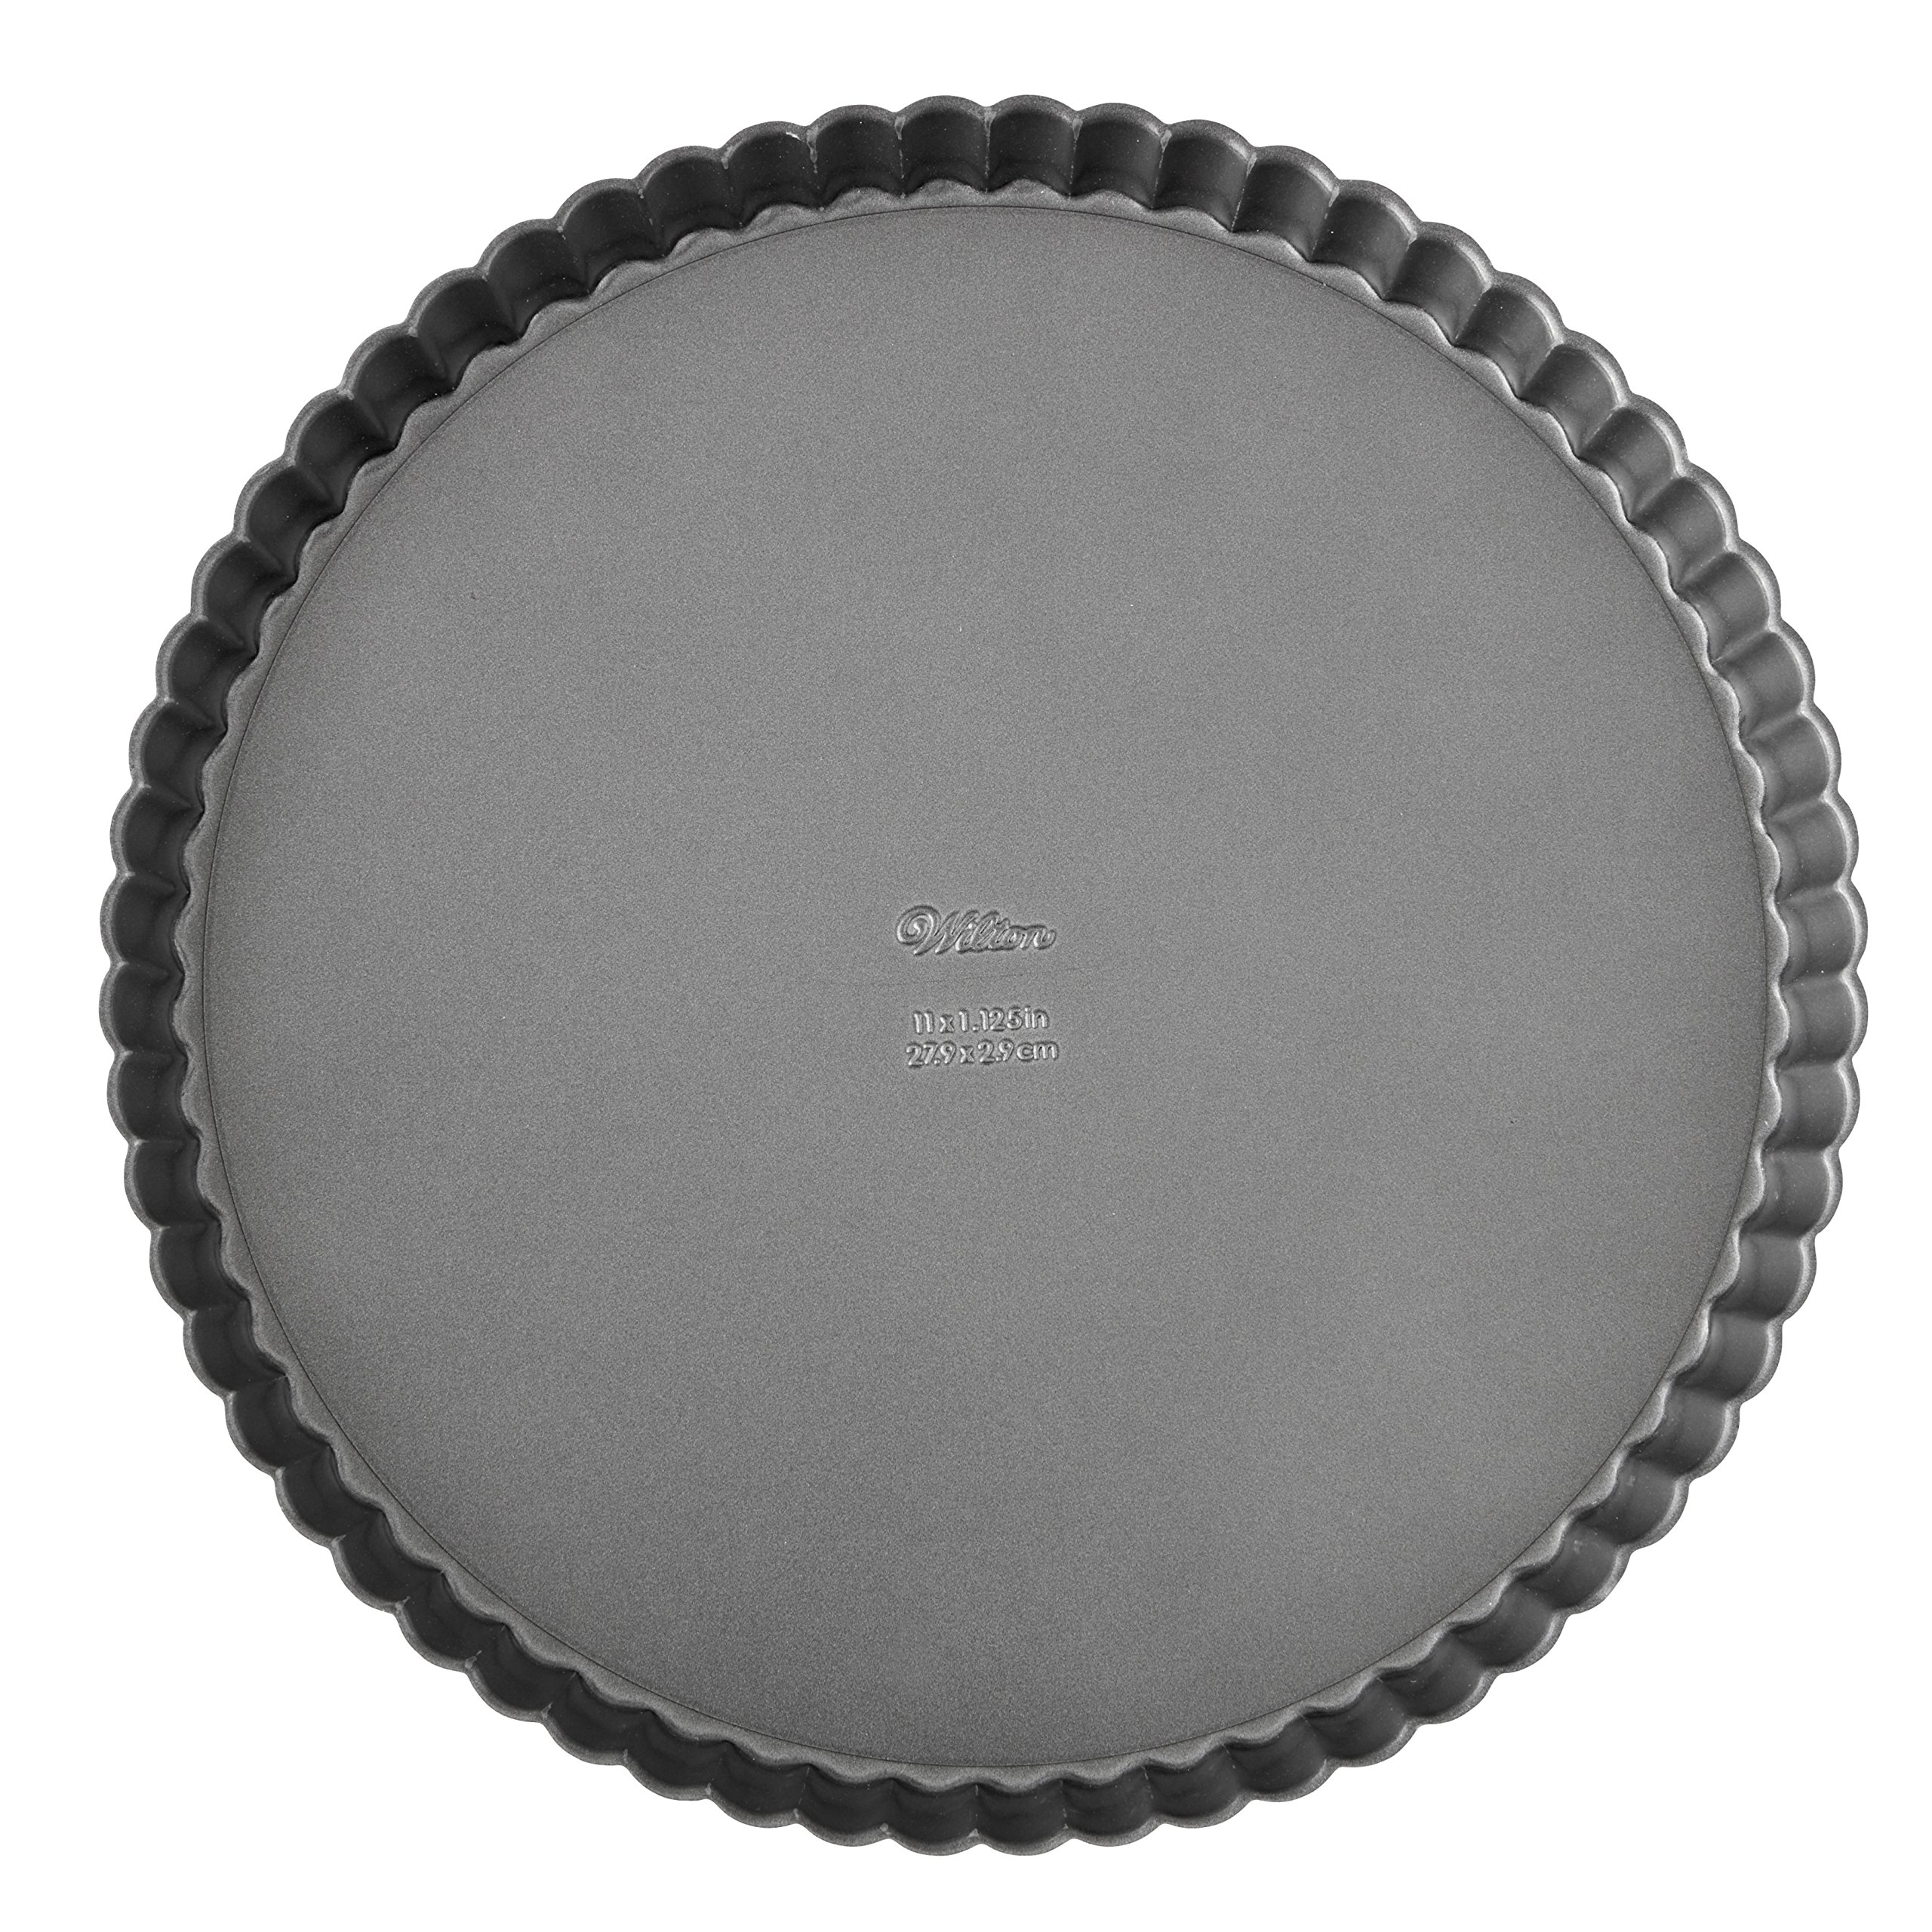 Wilton Excelle Elite Non-Stick Tart Pan and Quiche Pan with Removable Bottom, 9-Inch